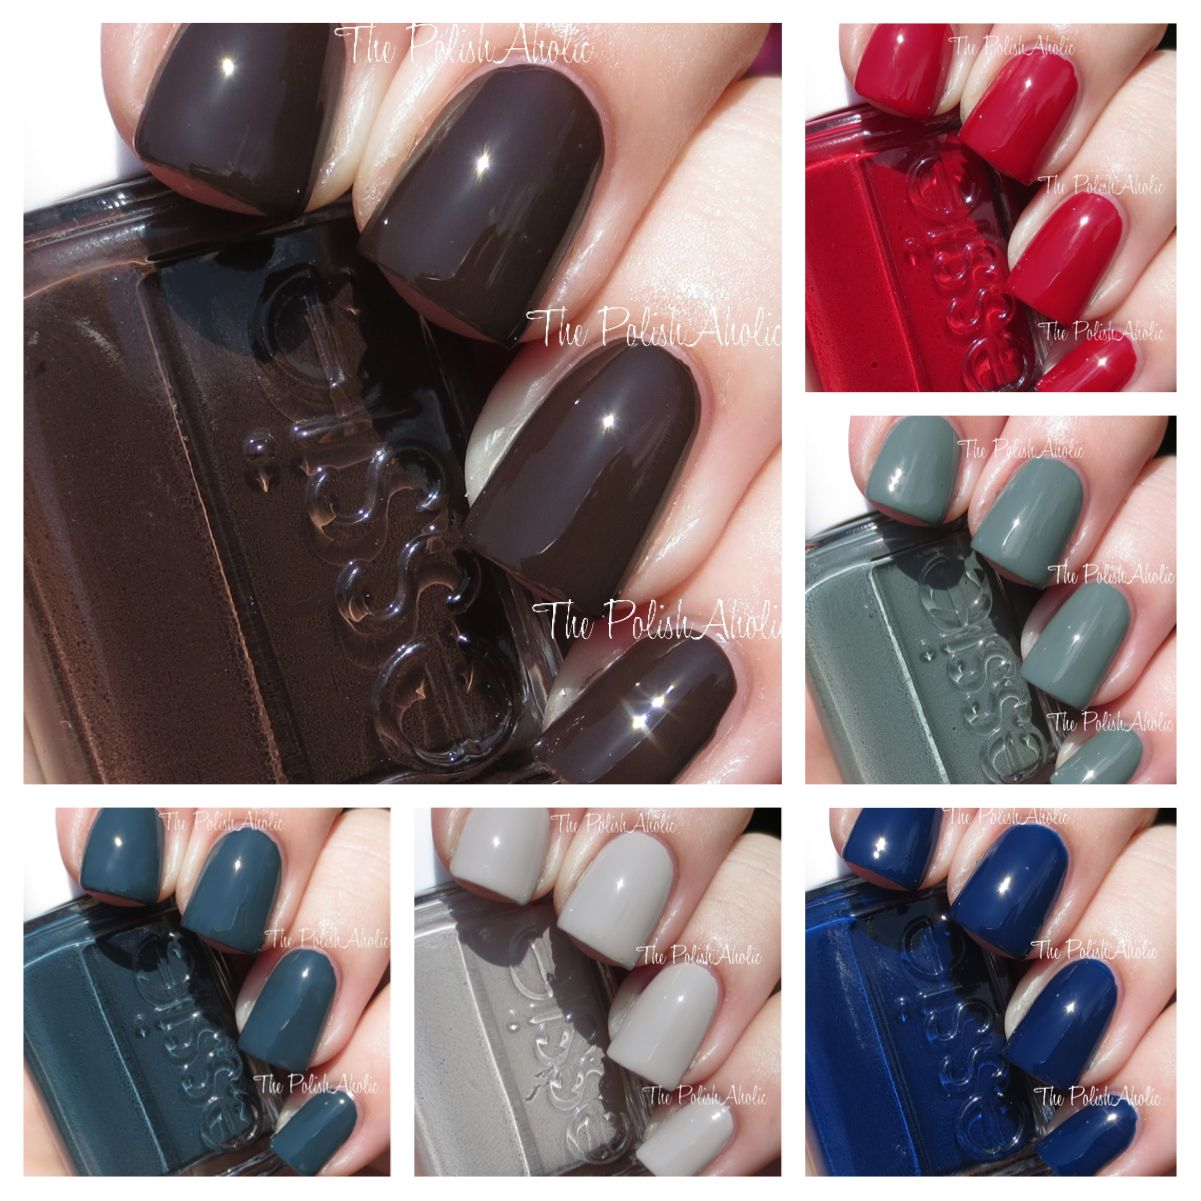 The polishaholic essie fall dress to kilt collection swatches